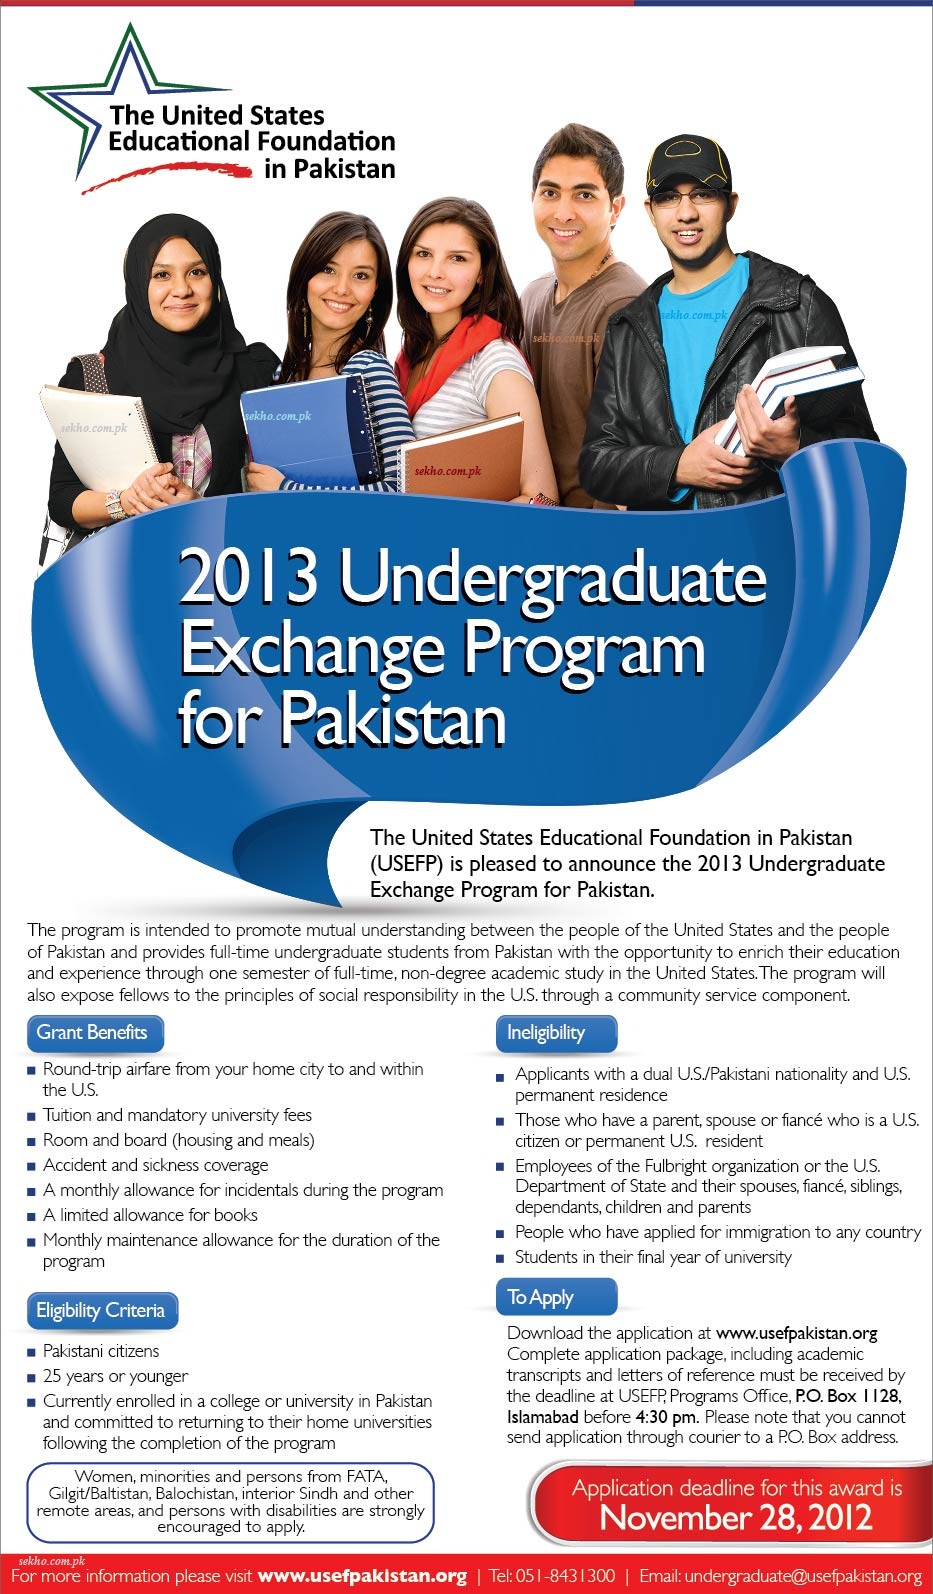 2013 Undergraduate Exchange Program for Pakistan